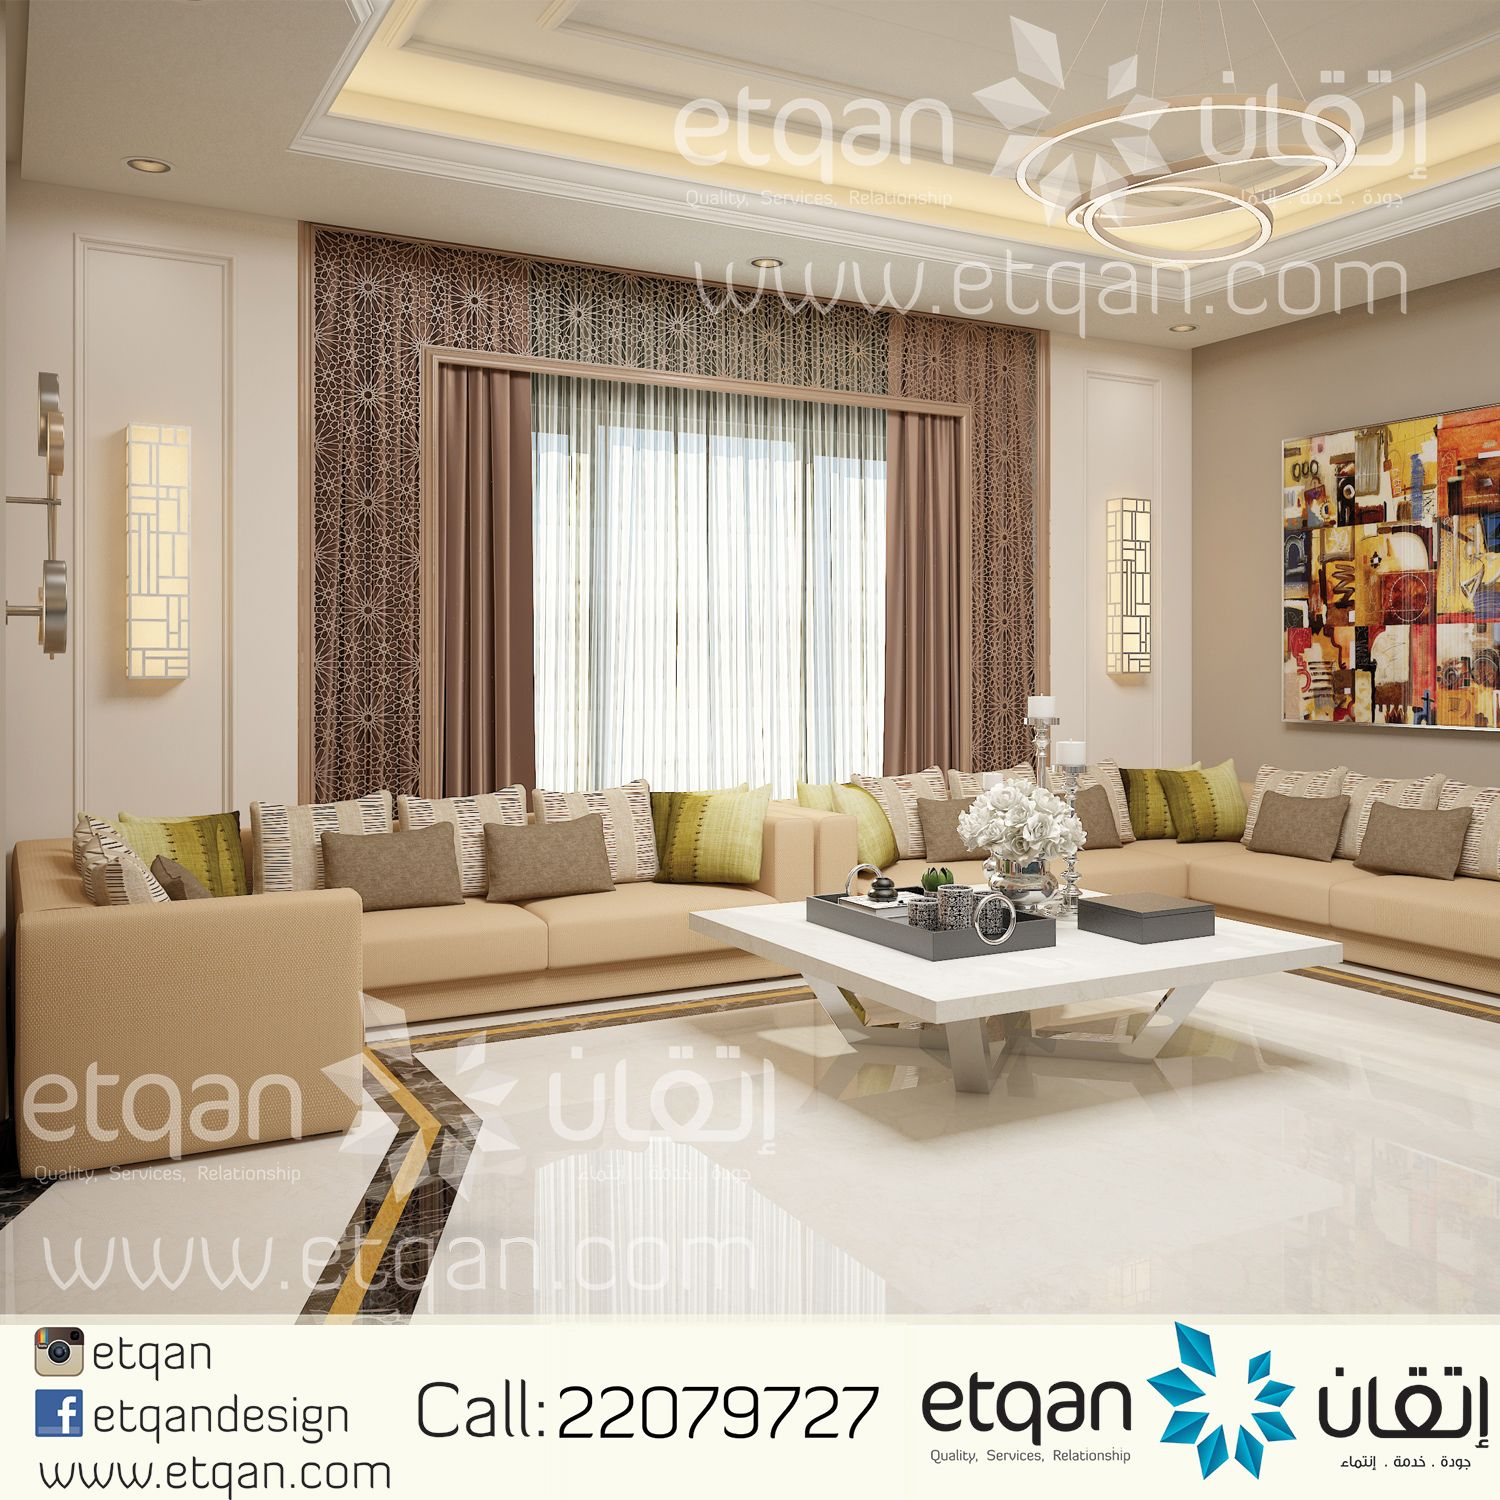 You can have a look at our lavish women majlis designs in the gallery -  Interior Design For Men Majlis With